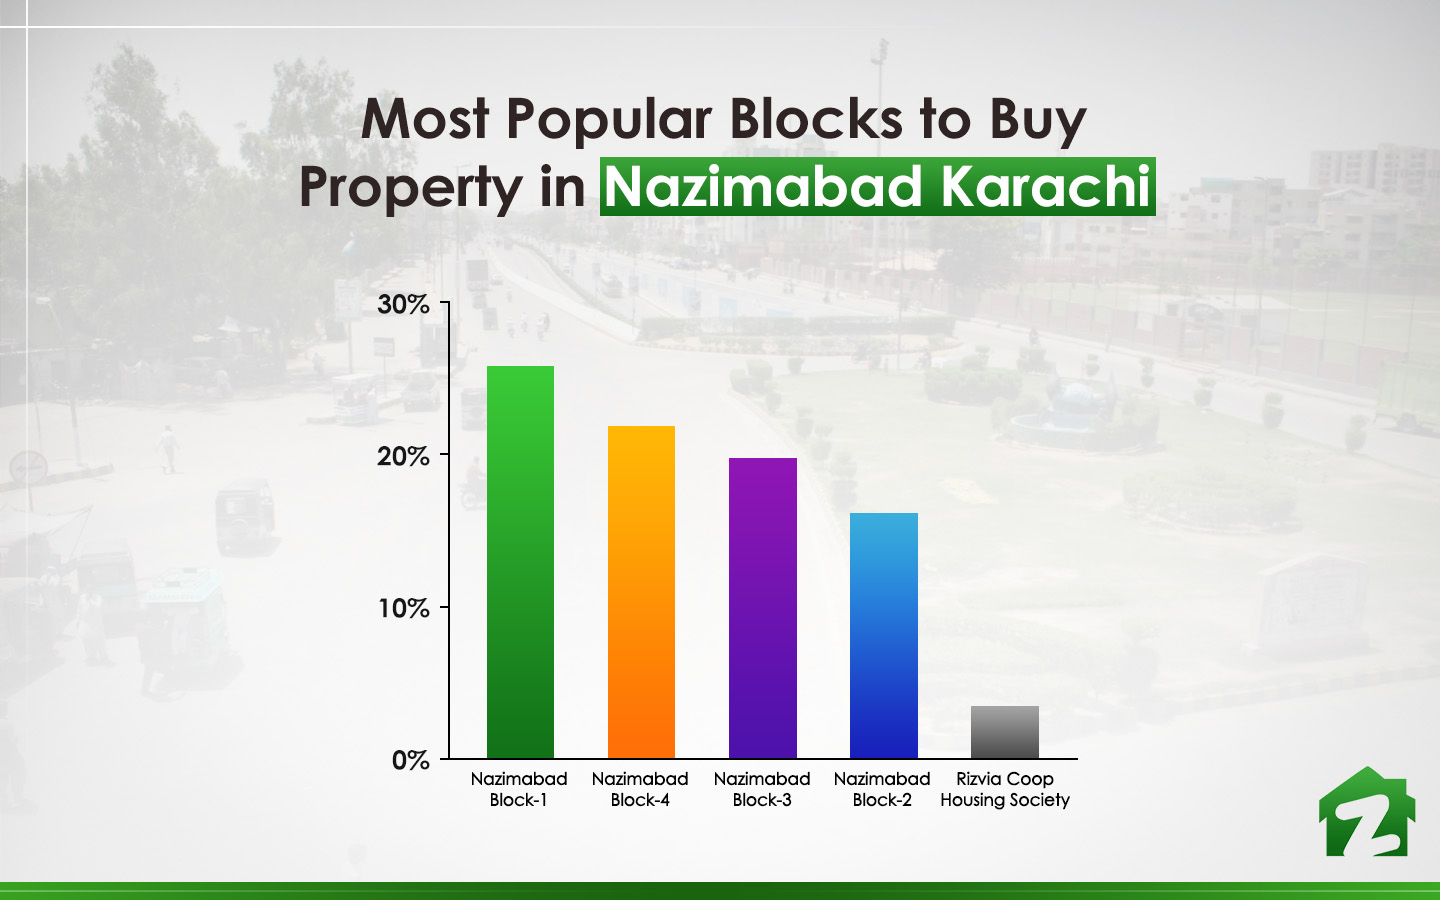 Top 5 blocks to buy property in Nazimabad